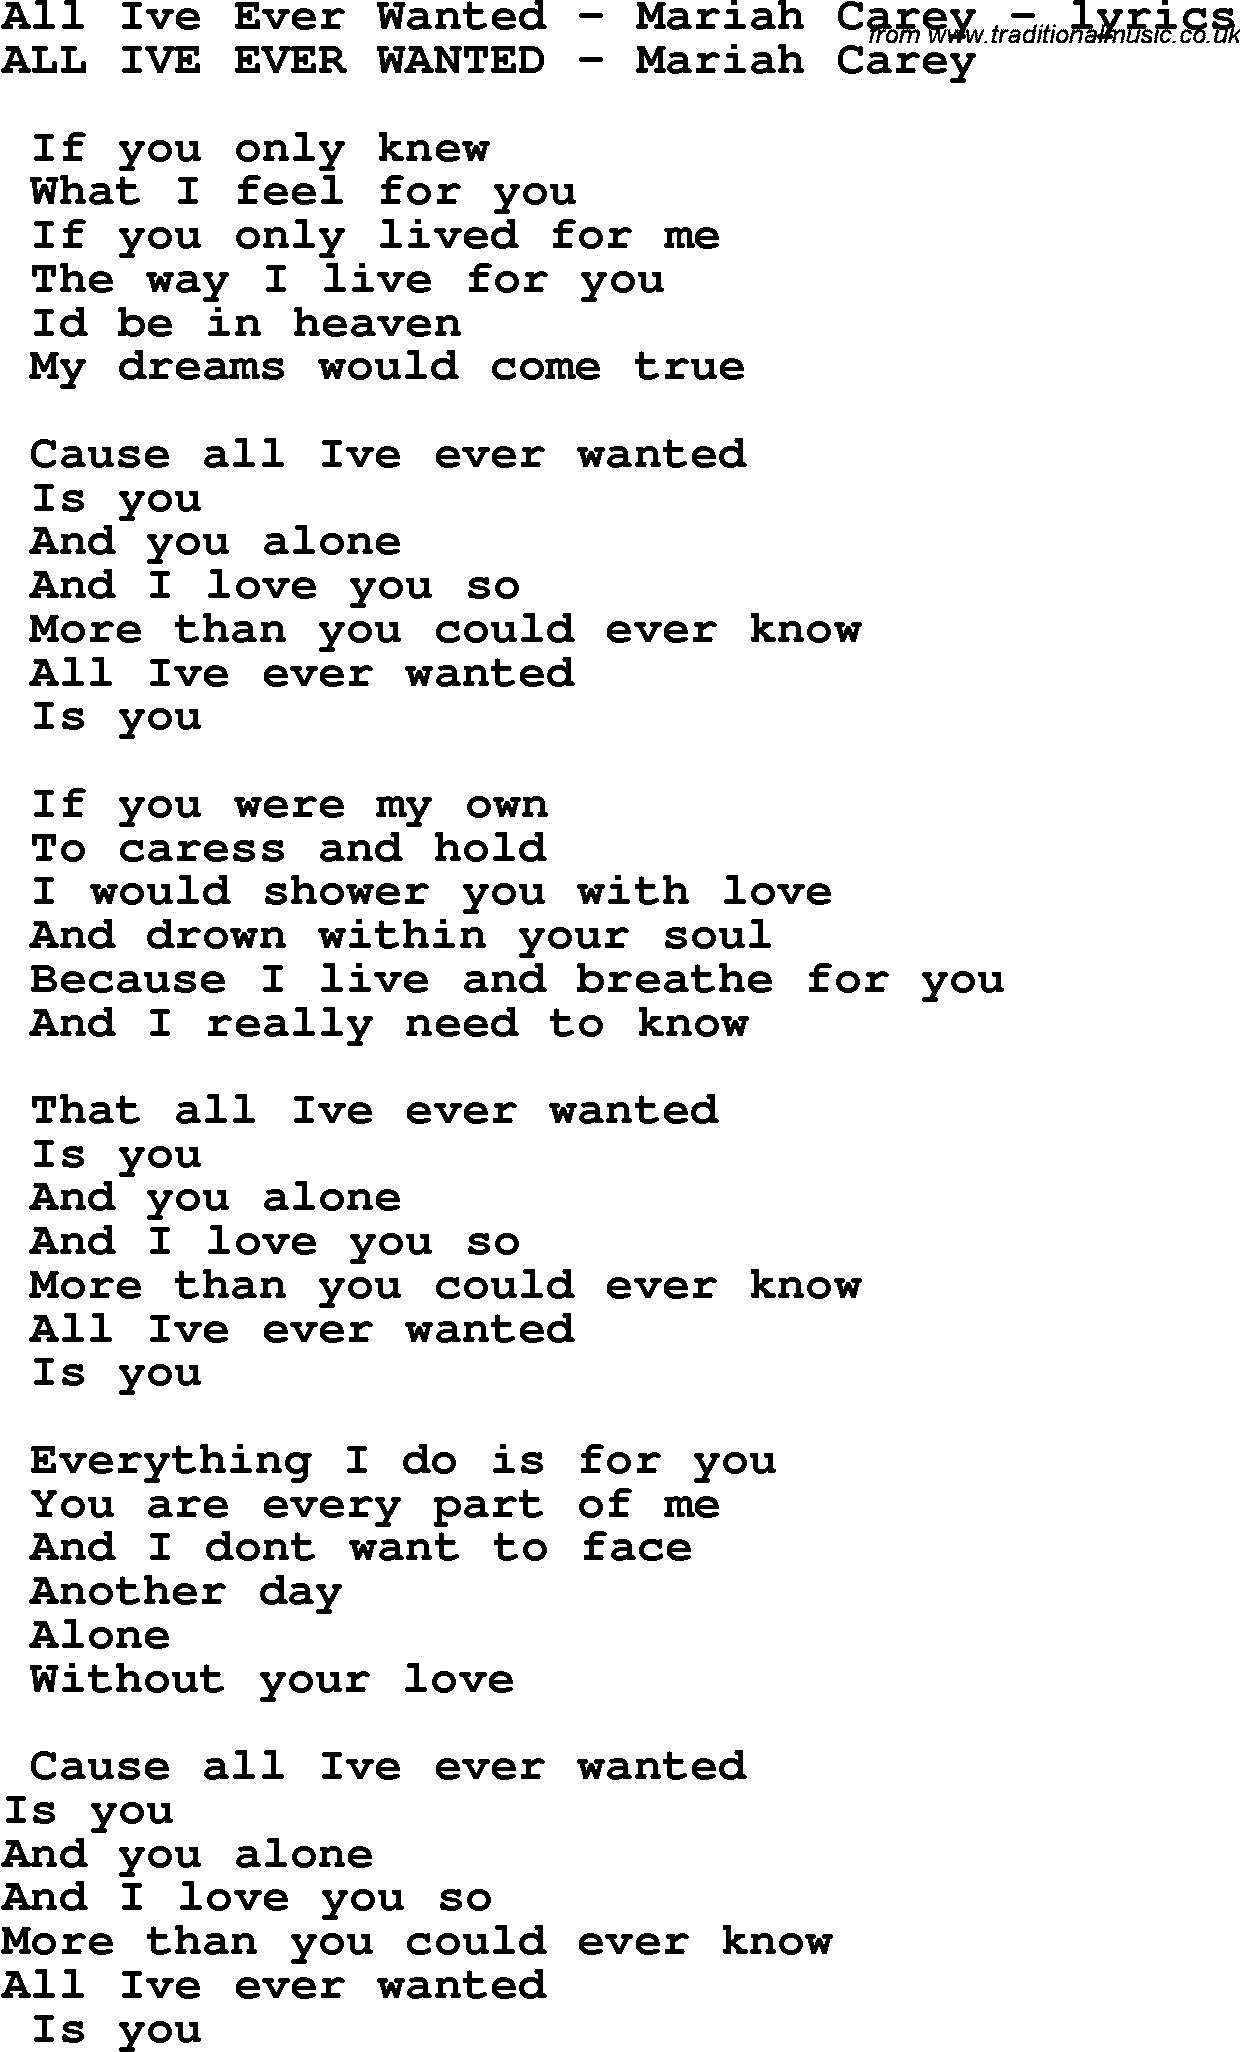 Love Song Lyrics for:All Ive Ever Wanted - Mariah Carey Mariah Carey Chords